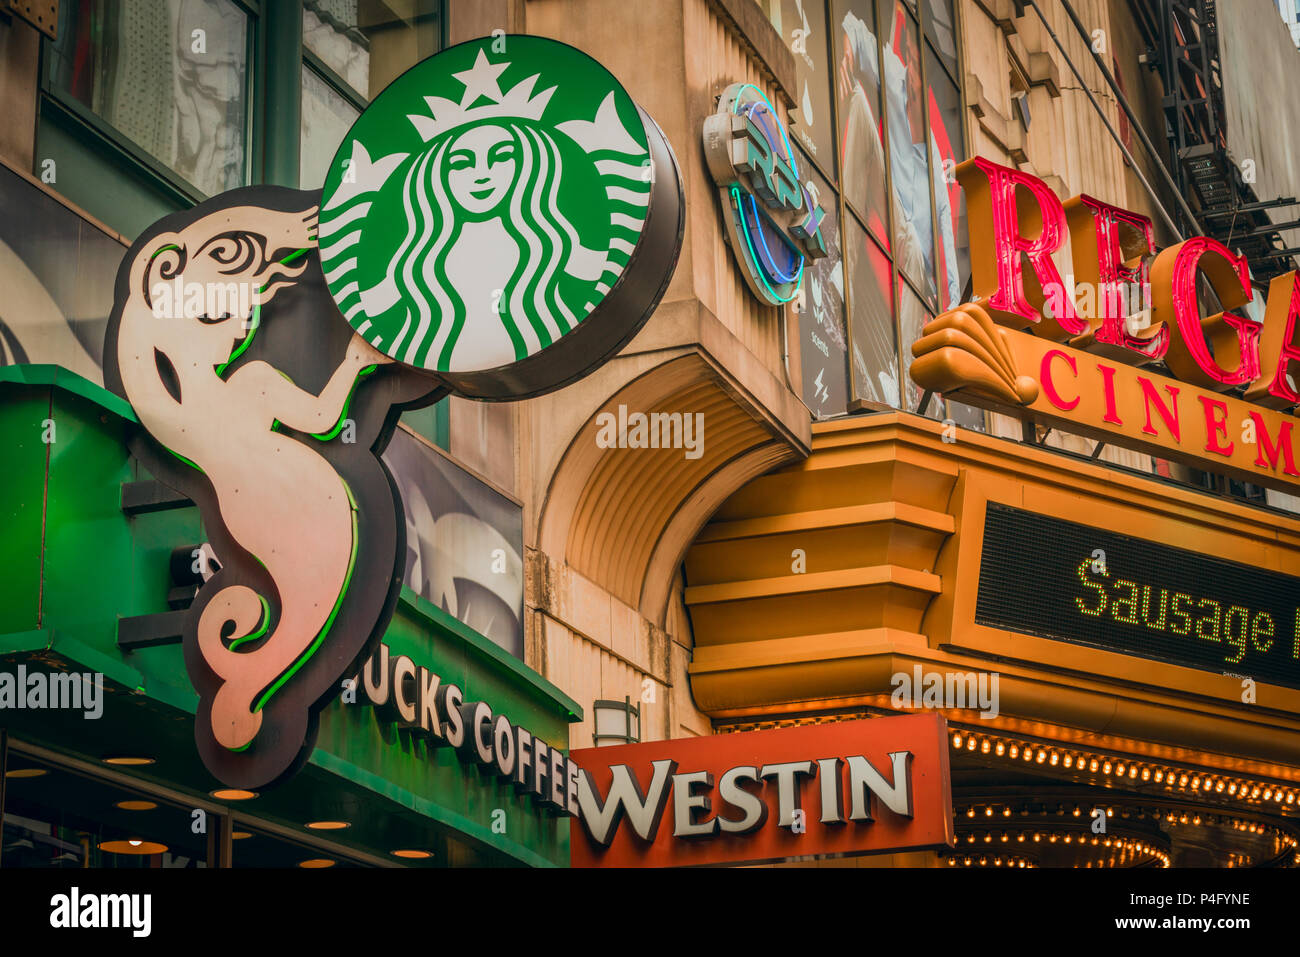 Jumbled signs and advertising on the streets of Manhattan, New York City - Stock Image